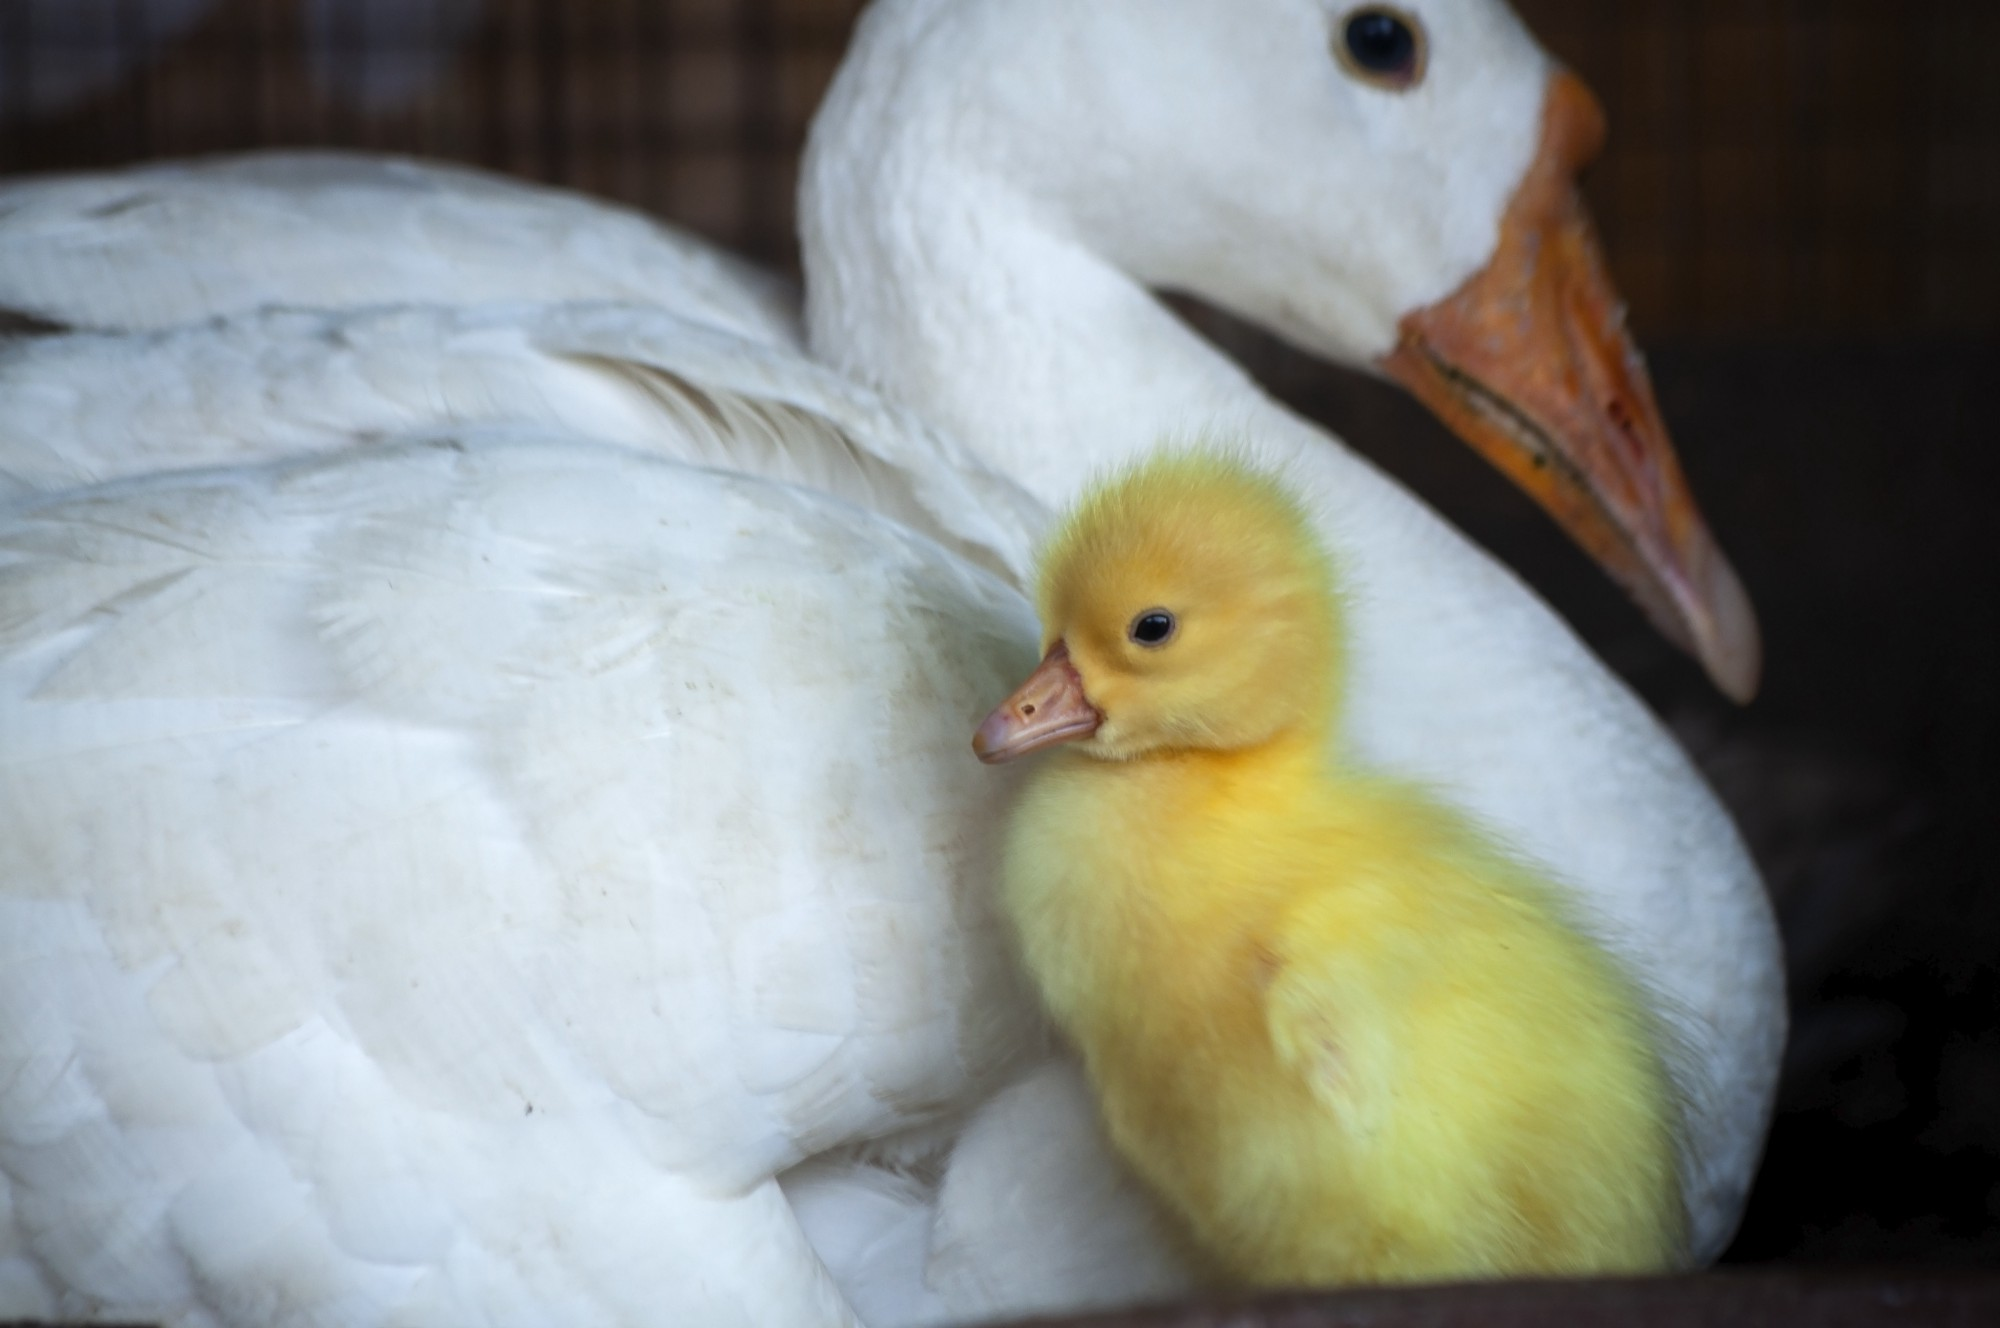 Mother duck and baby duckling.